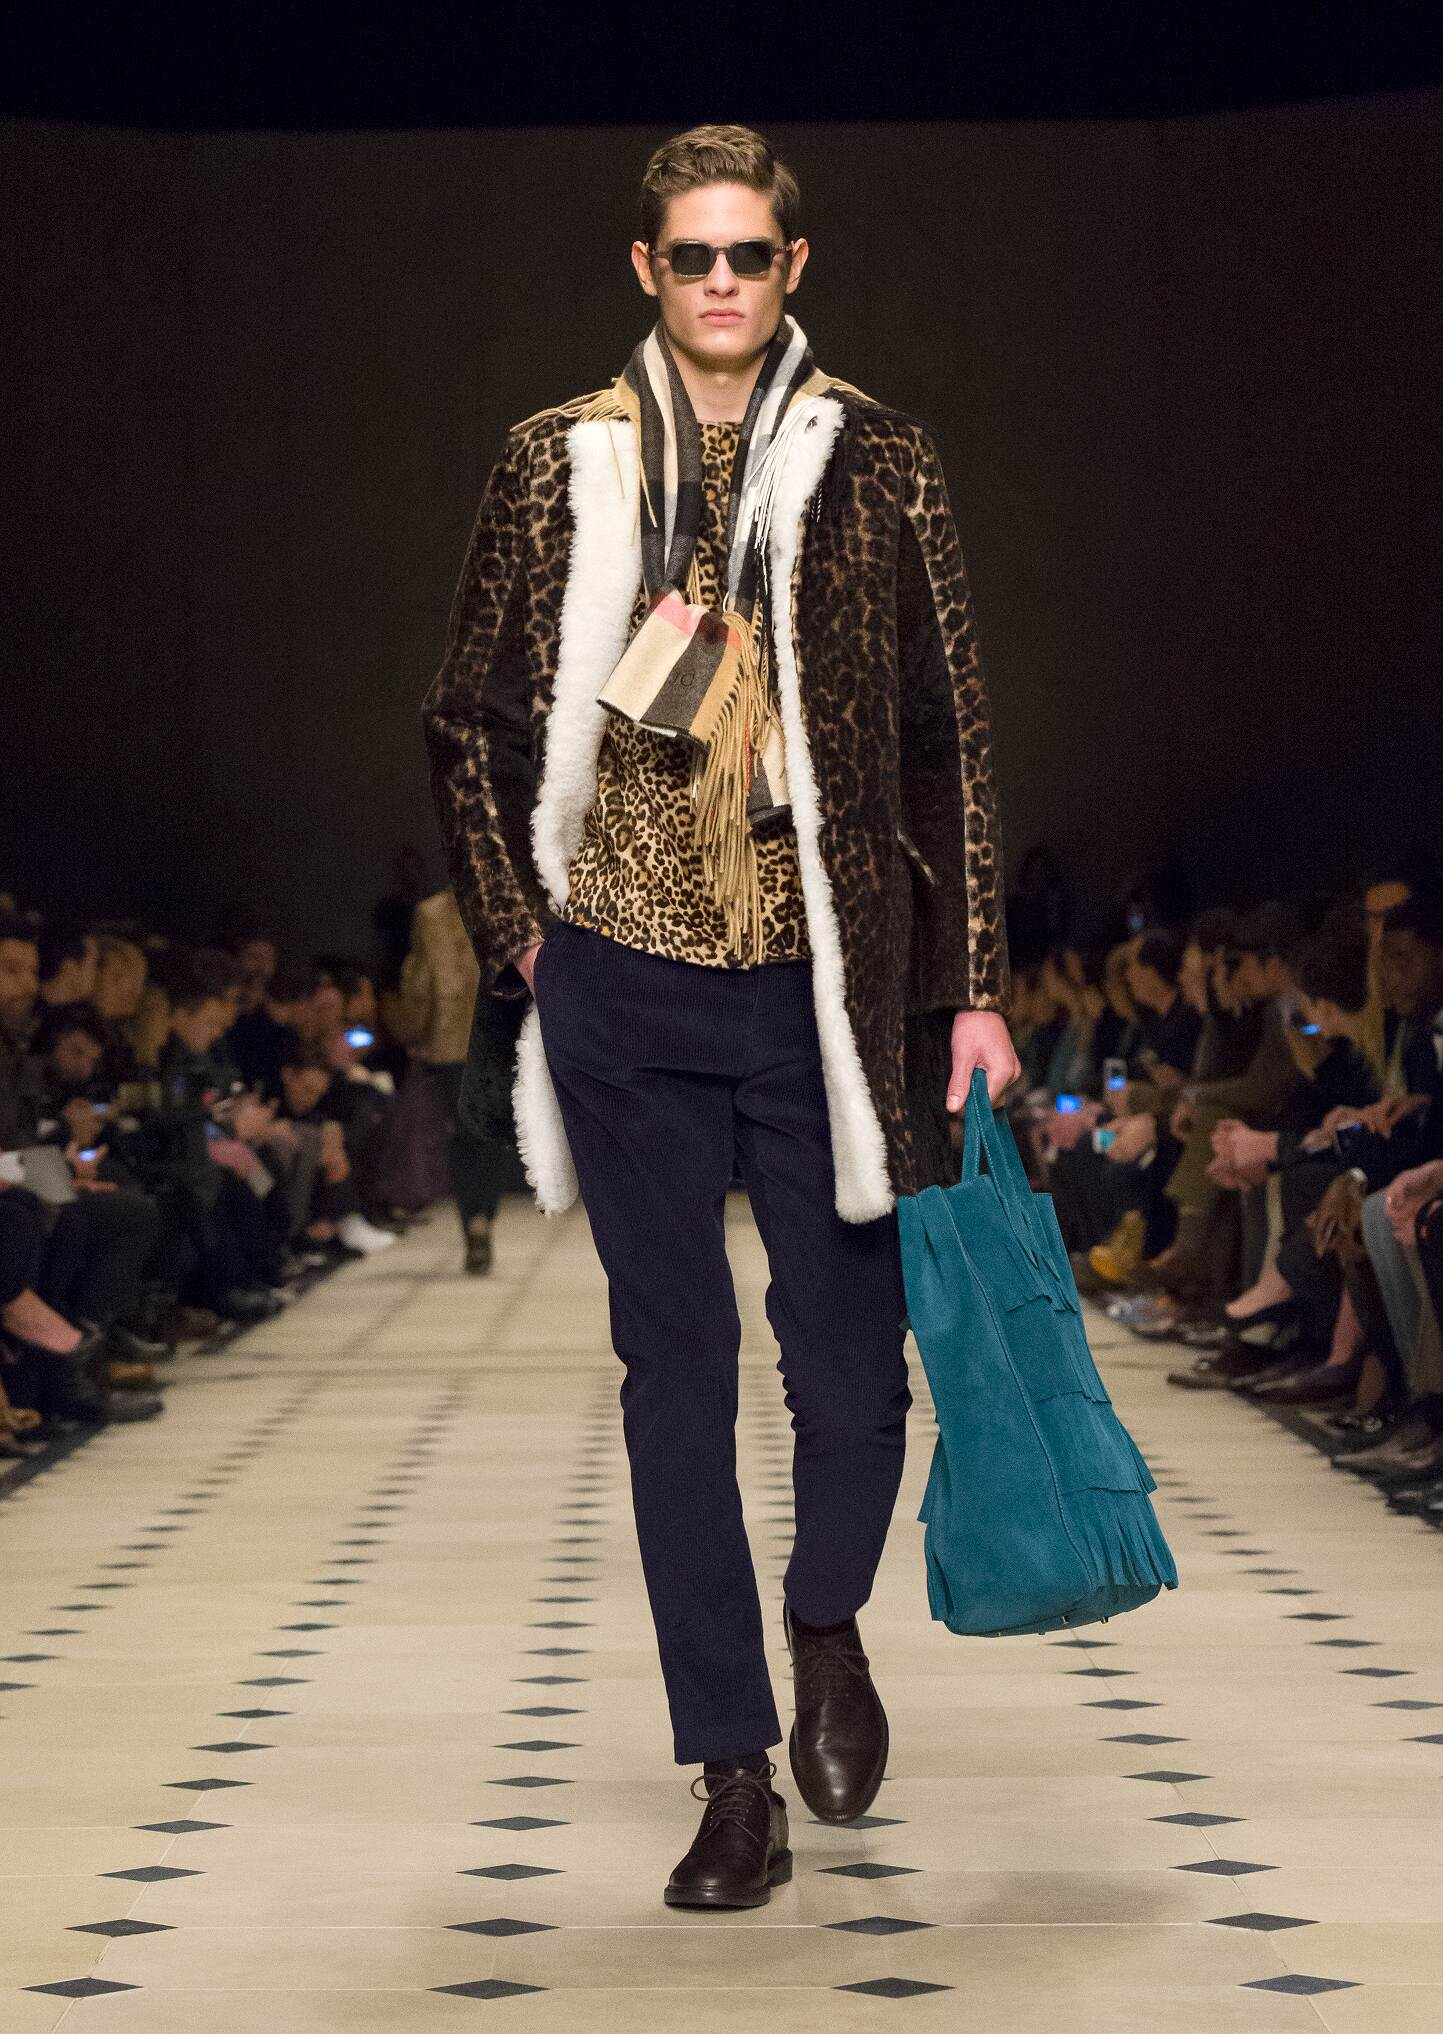 Burberry Prorsum London Fashion Week Menswear